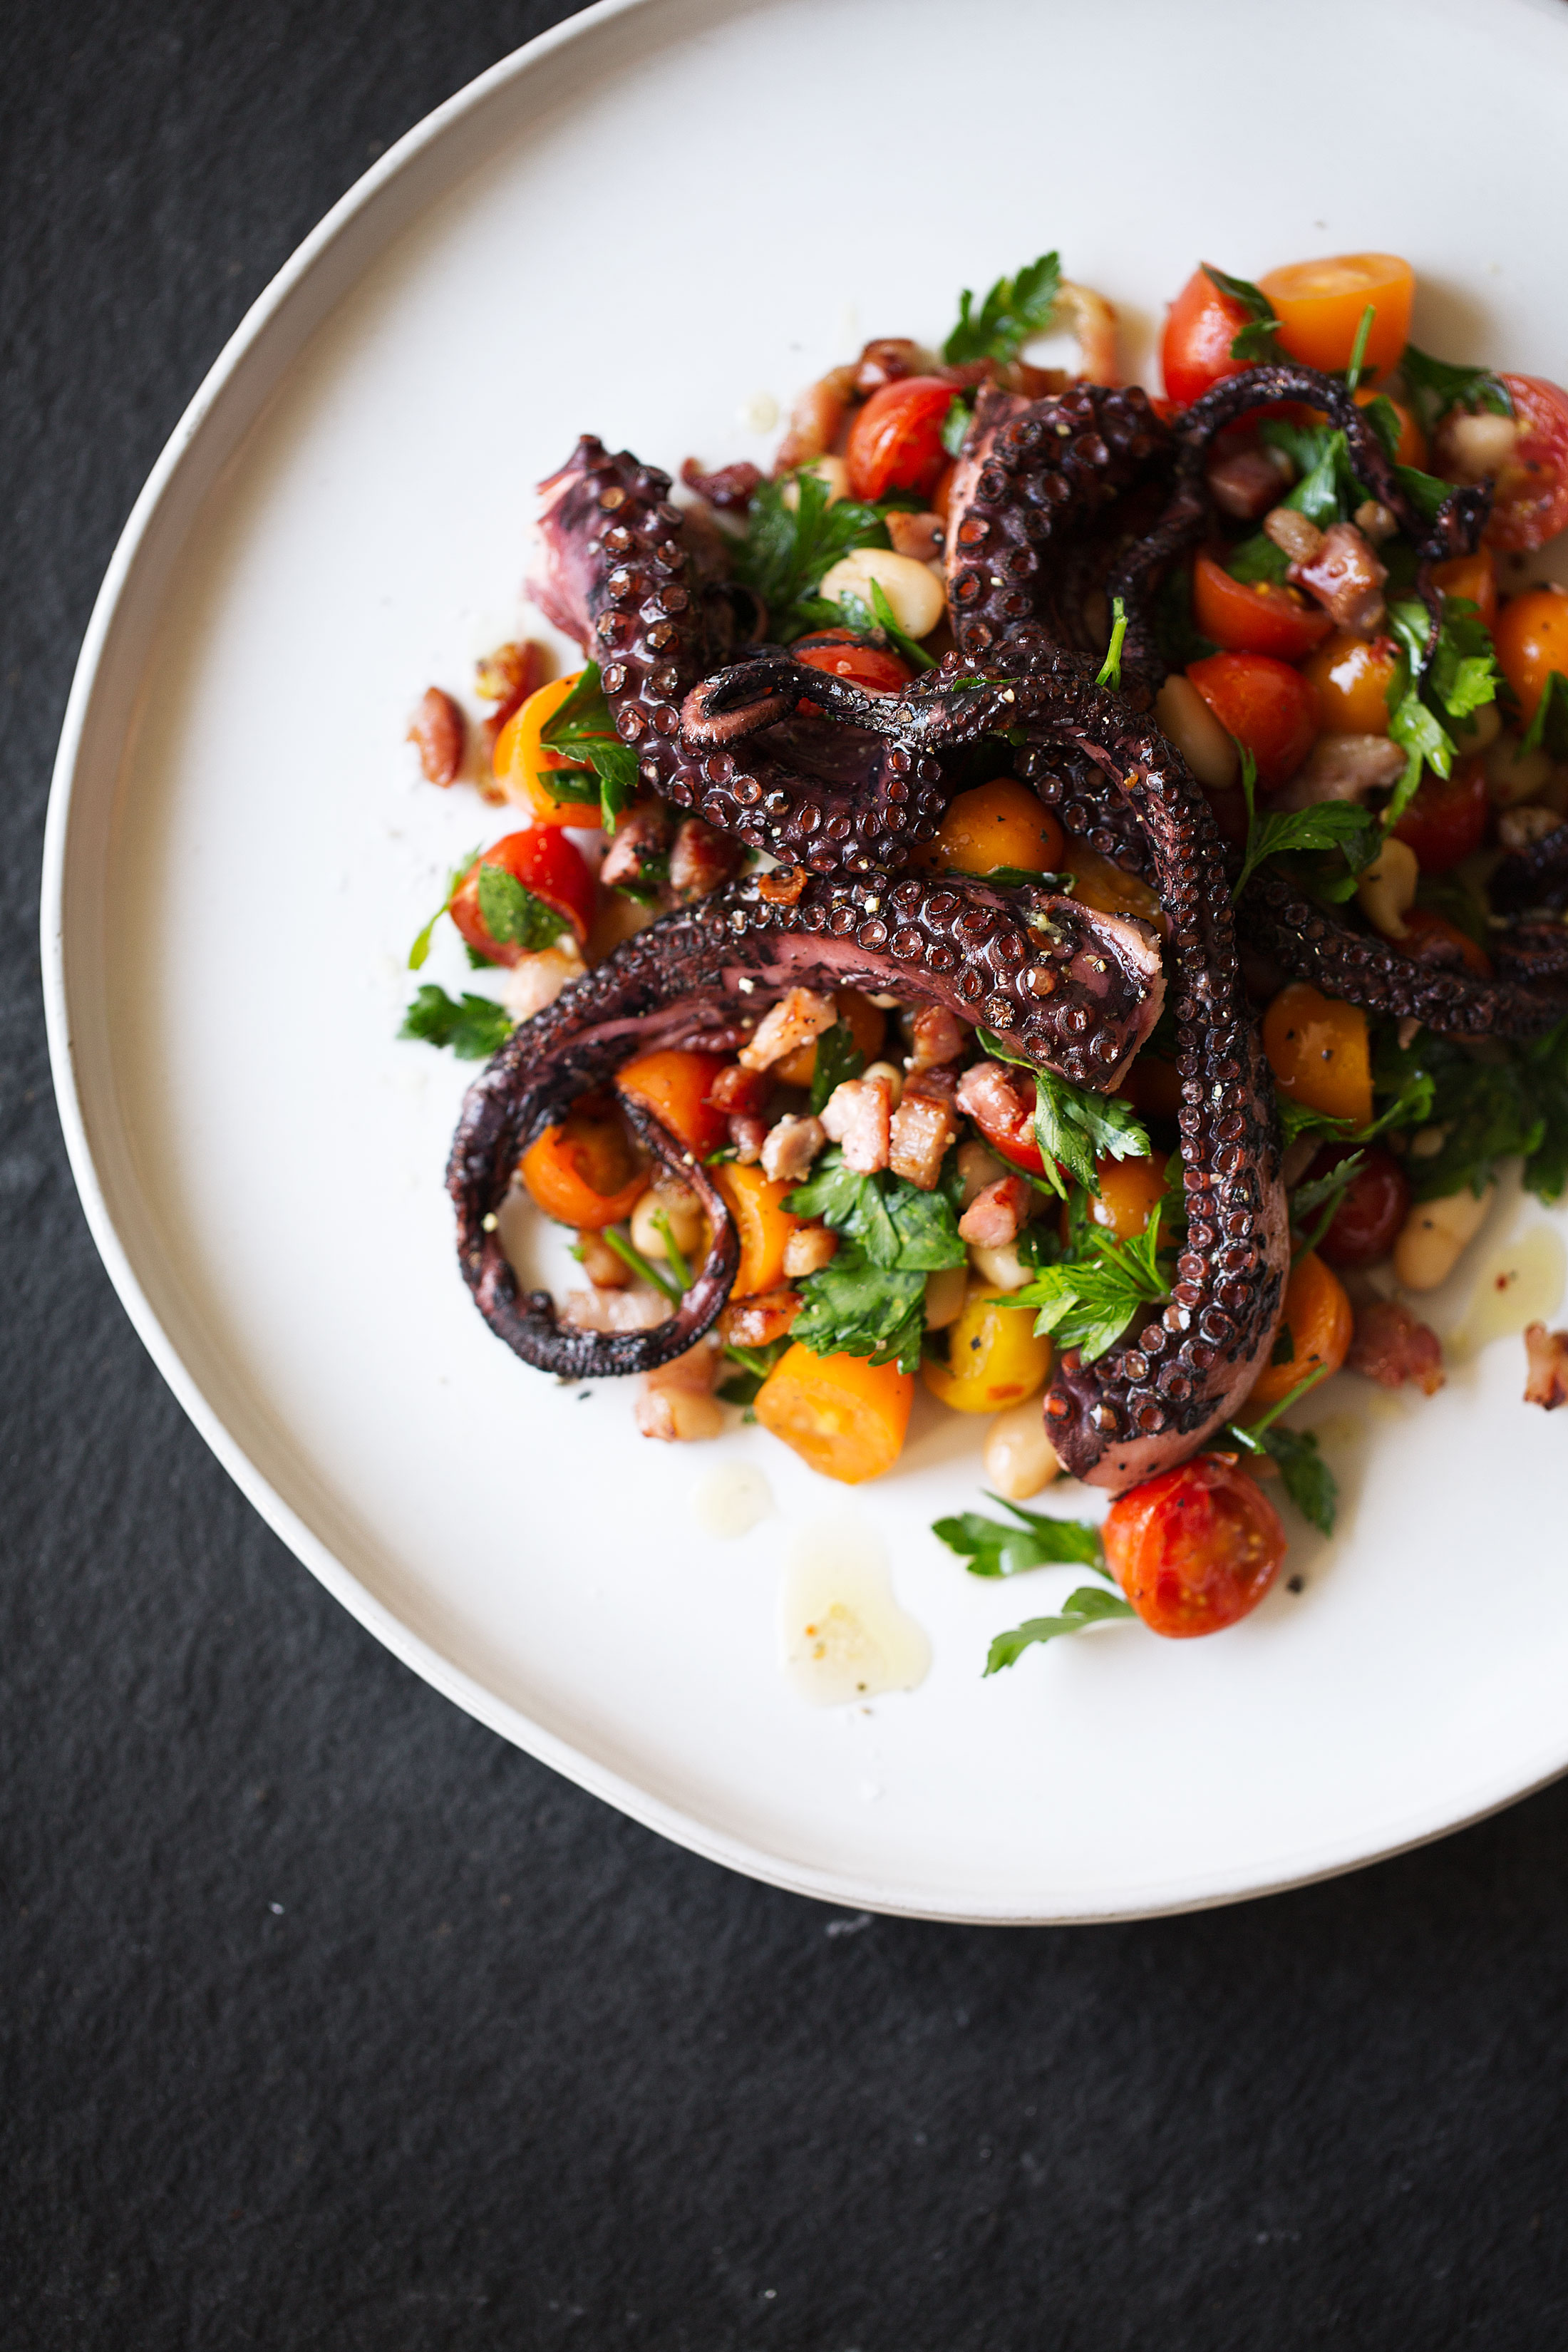 Charred Octopus with Warm White Bean and Tomato Salad and Guanciale Vinaigrette